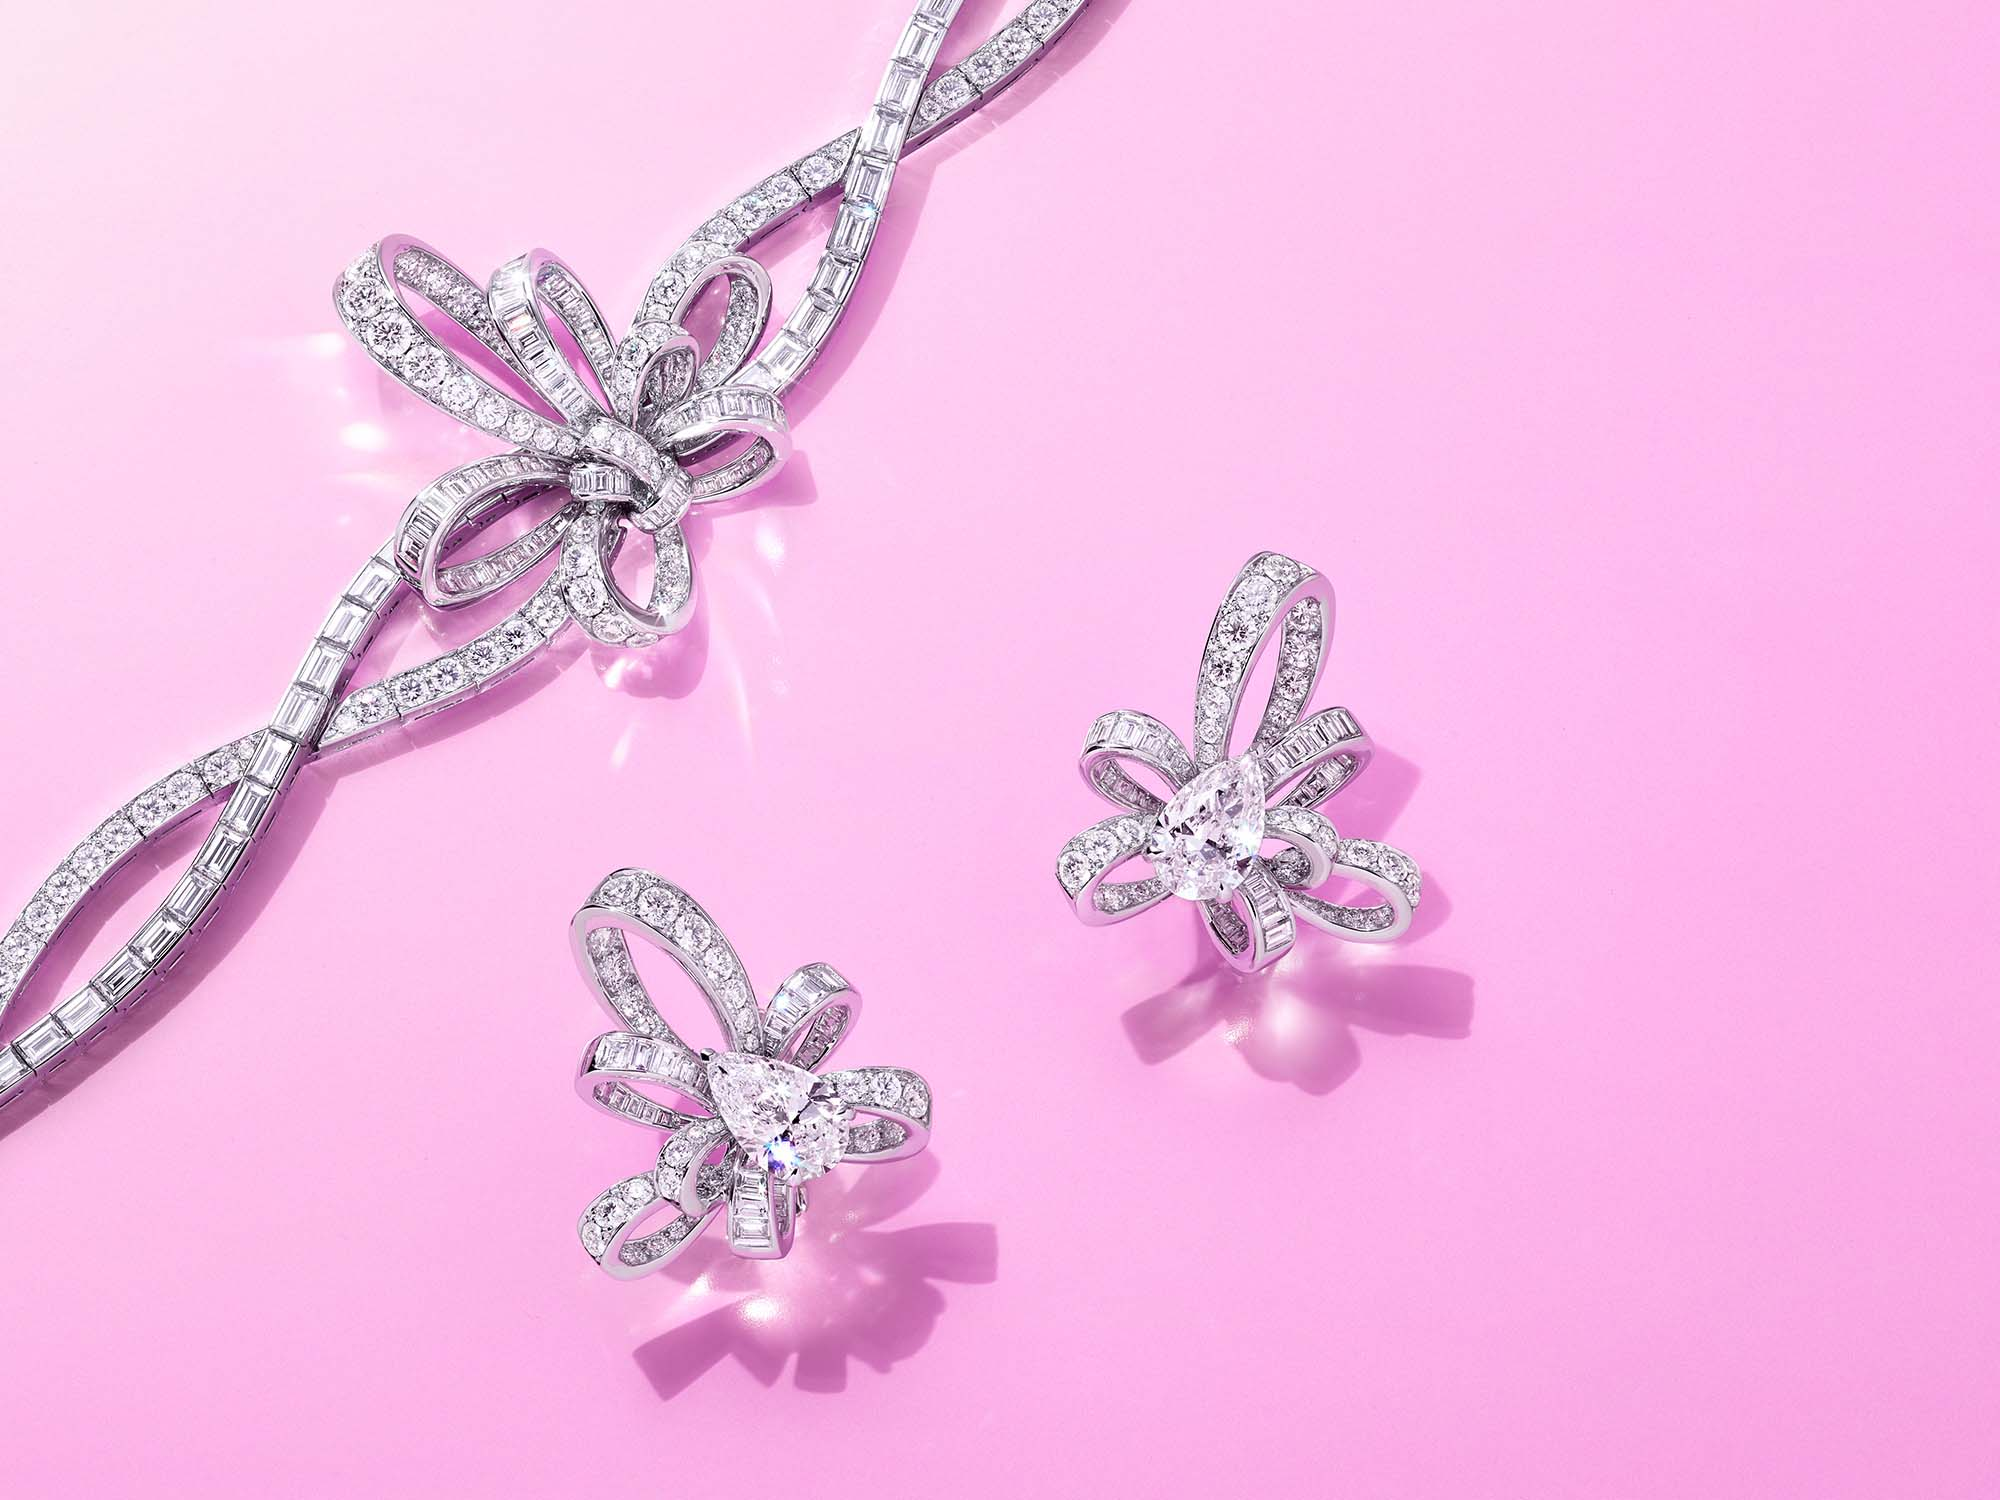 Graff Tilda's Bow jewellery collection diamond earrings and bracelet on a pink background